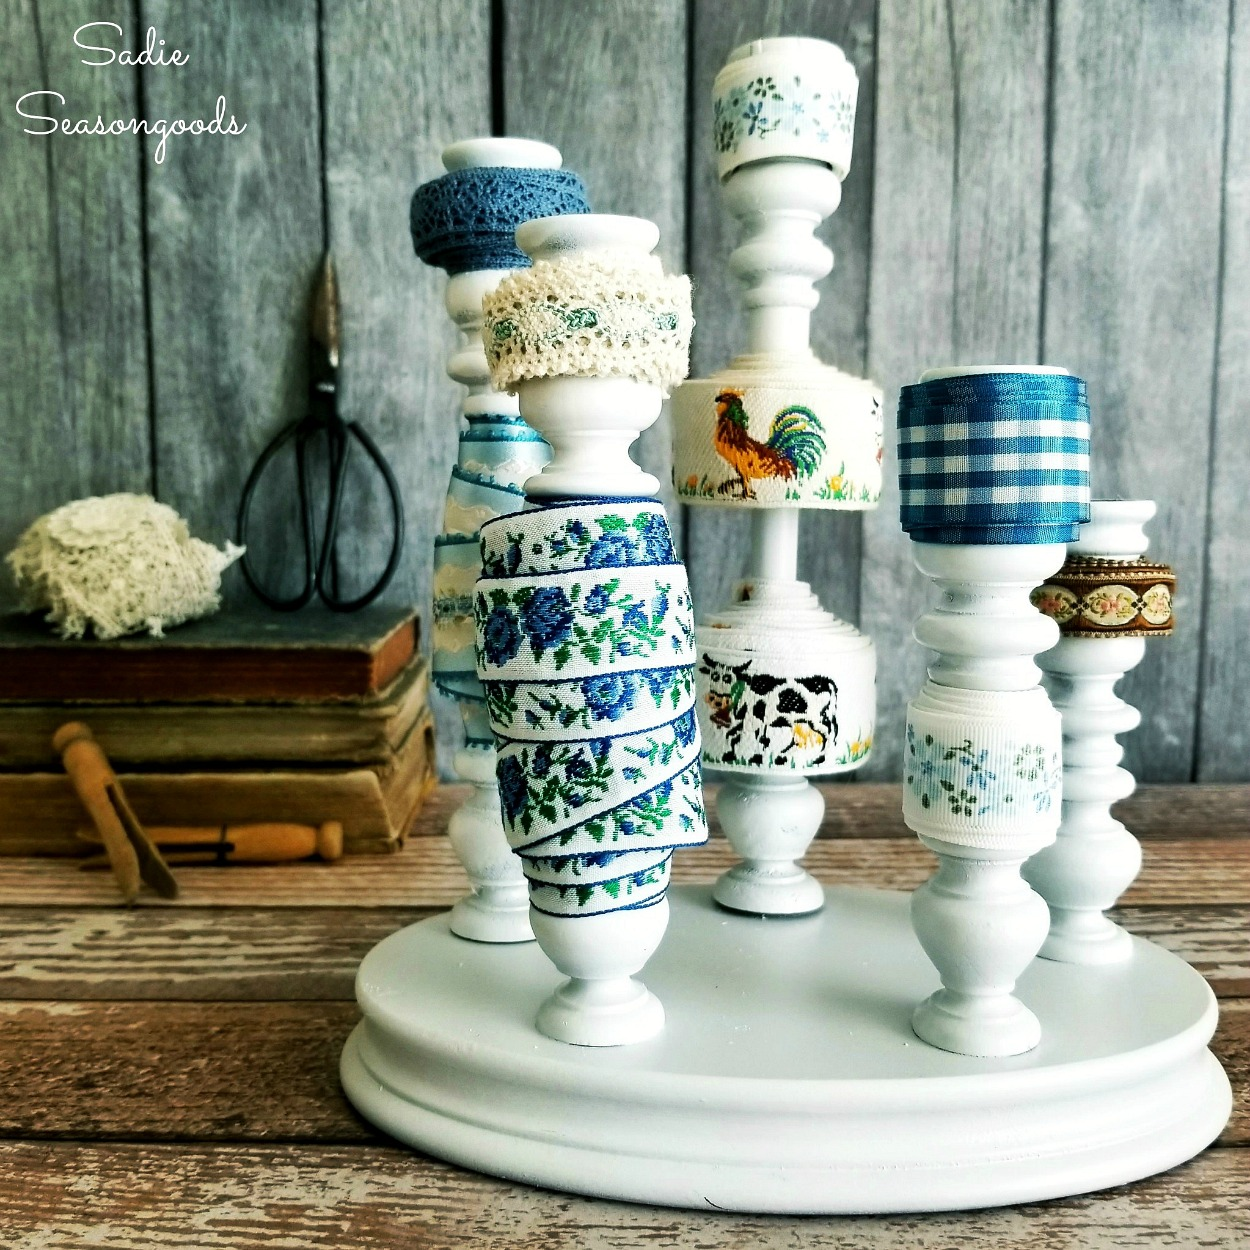 Ribbon Organizer with a Wooden Candlestick / Candle Holders